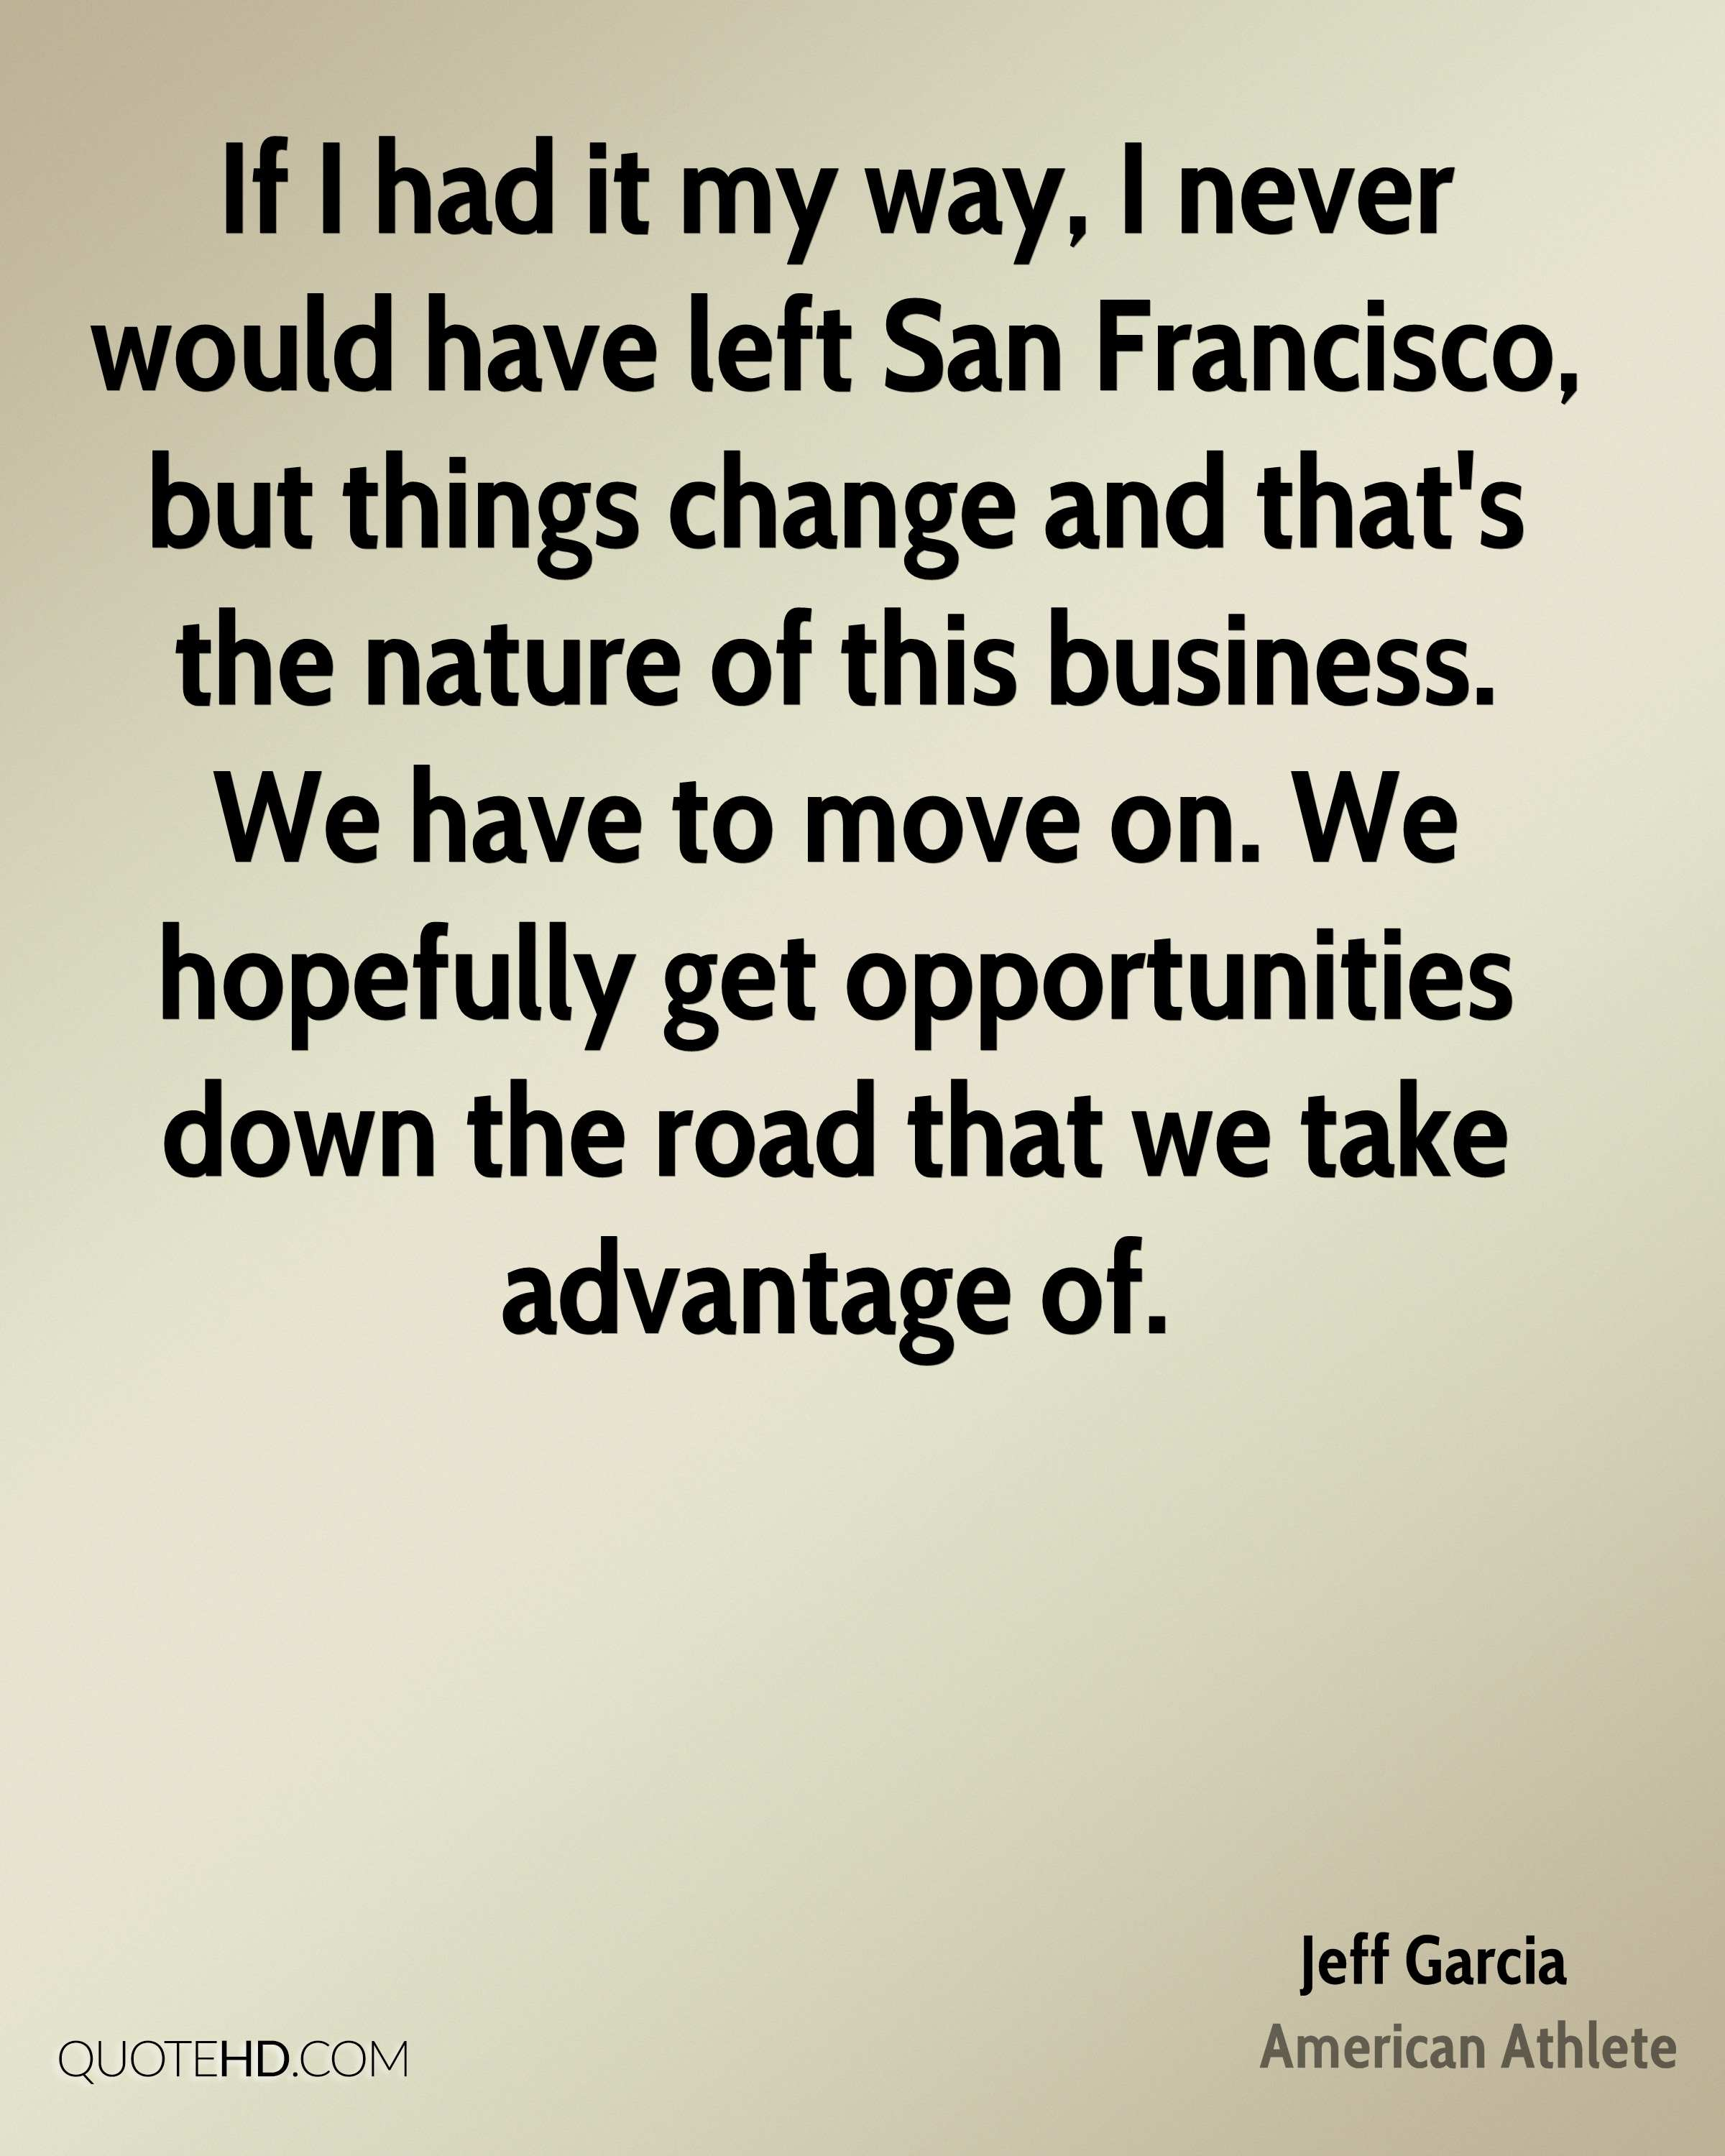 If I had it my way, I never would have left San Francisco, but things change and that's the nature of this business. We have to move on. We hopefully get opportunities down the road that we take advantage of.